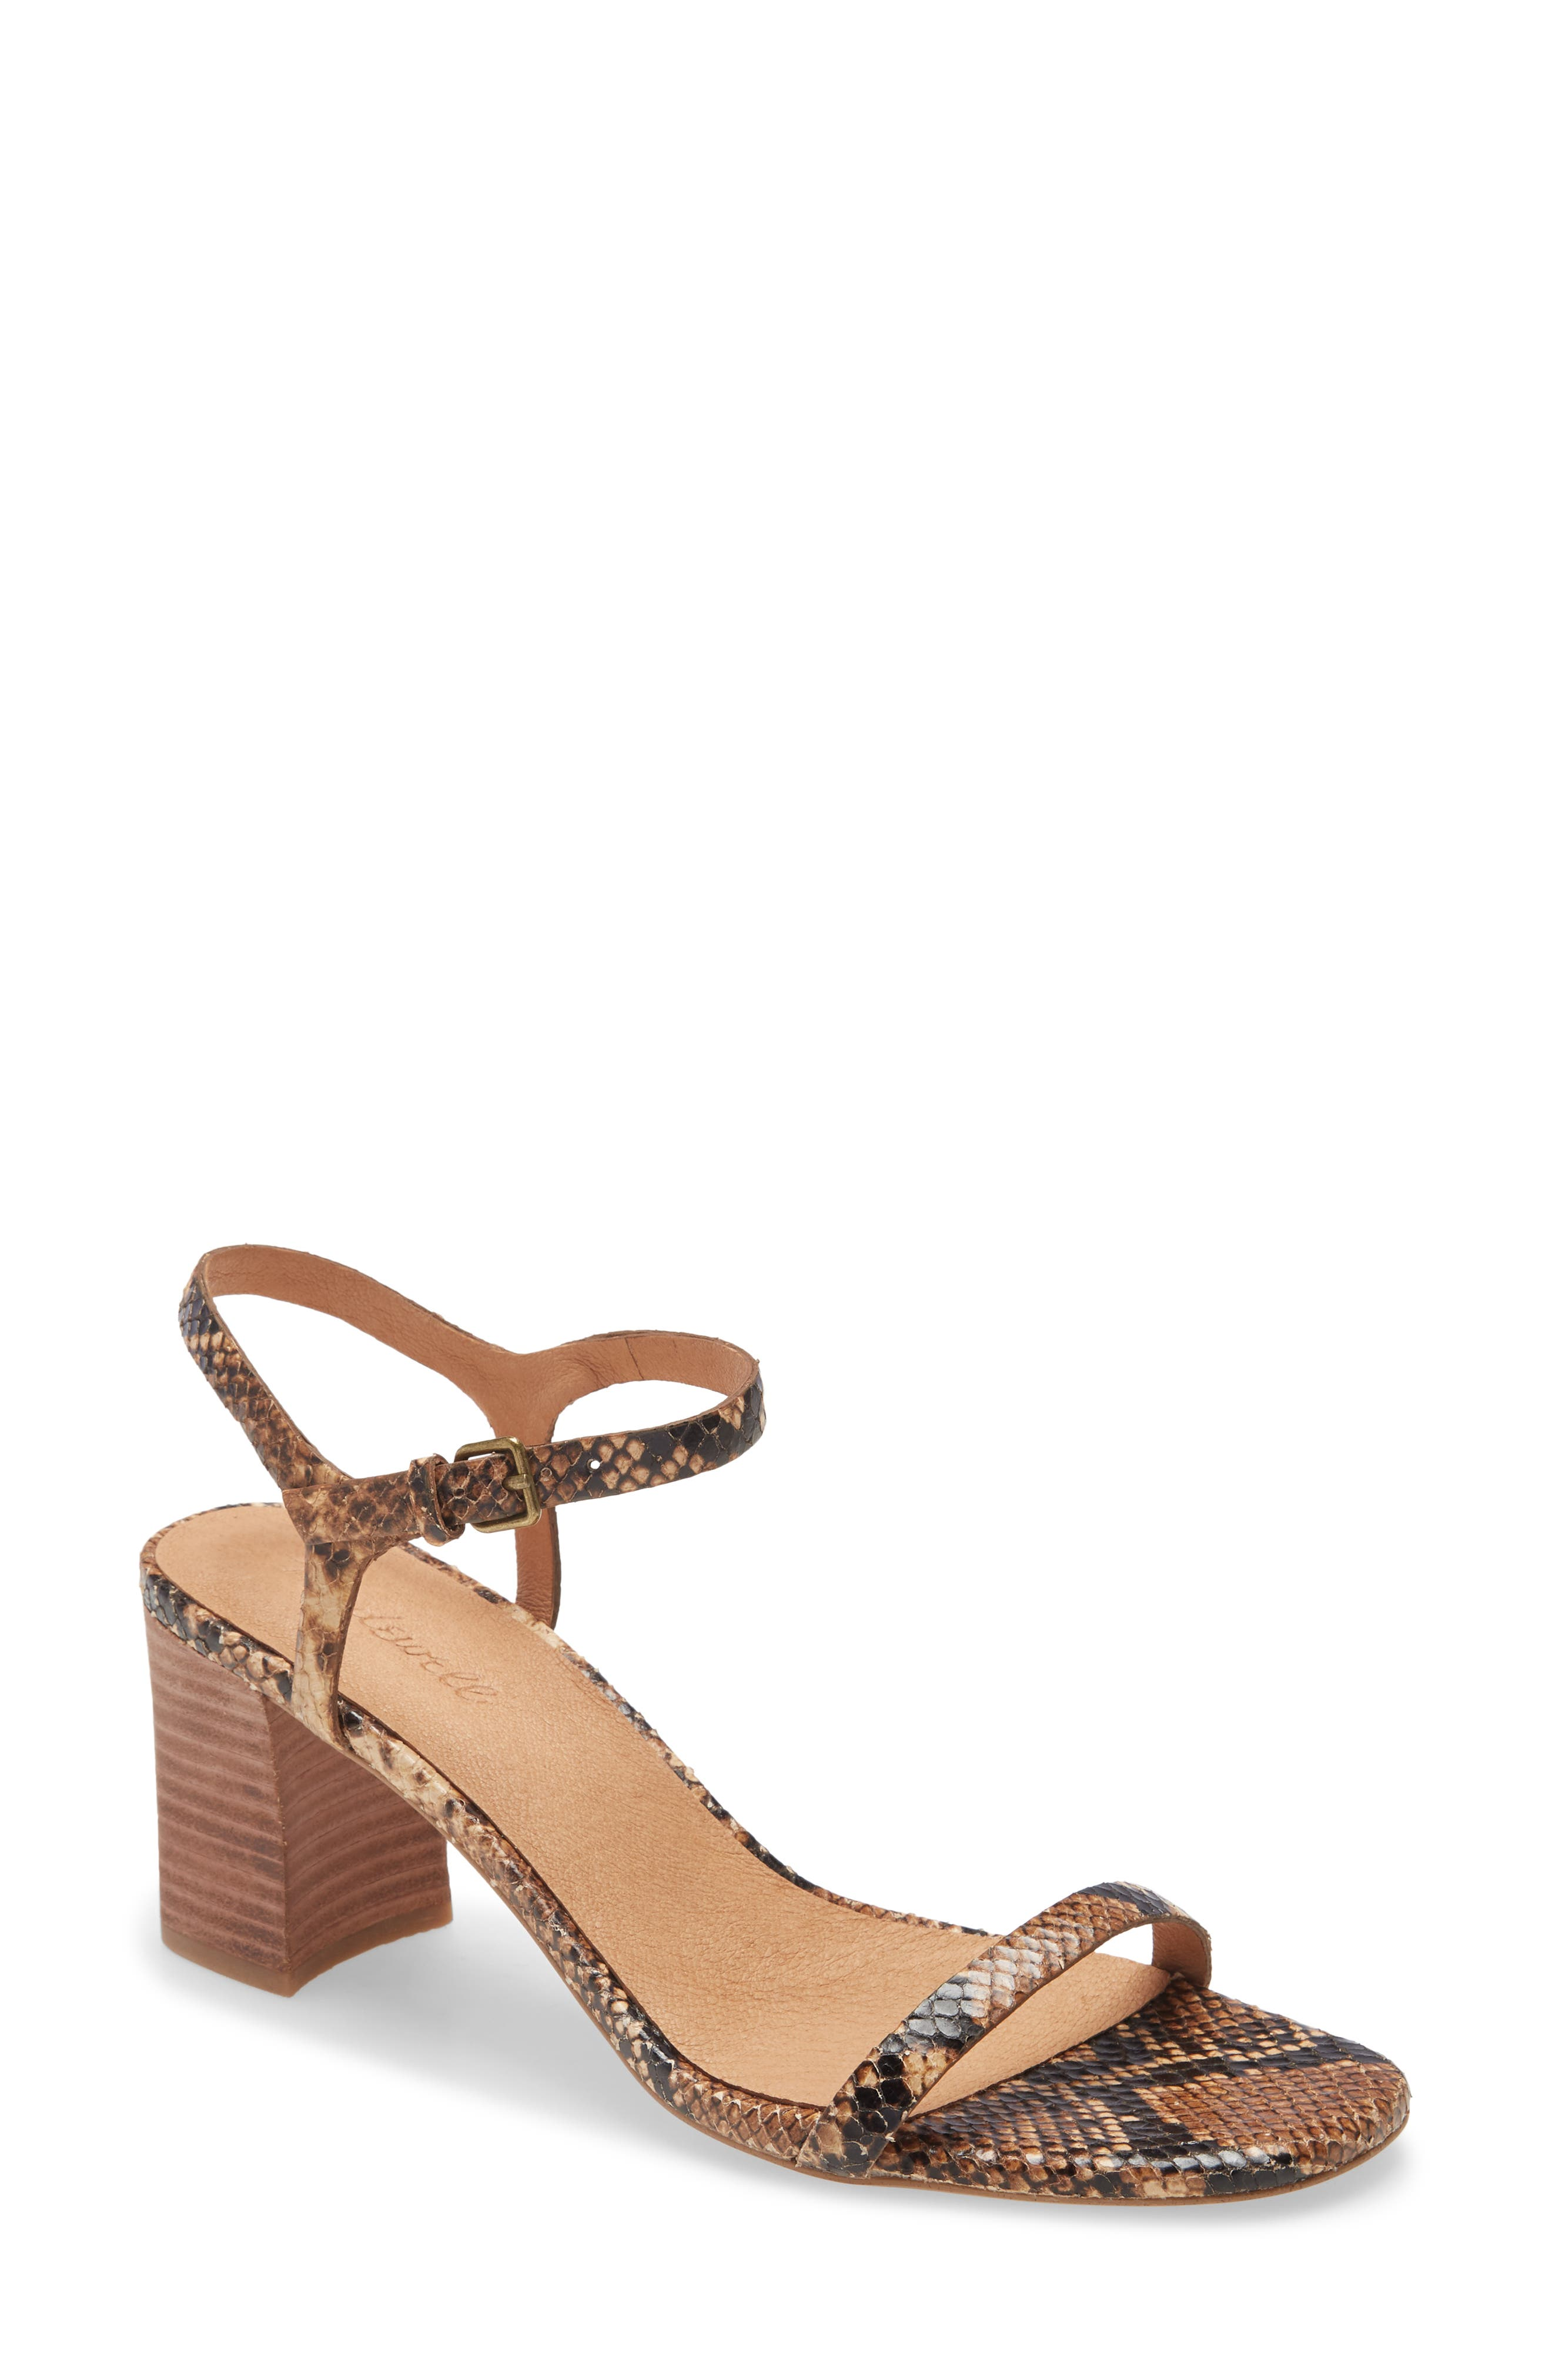 Image of Madewell The Hollie Ankle Strap Sandal